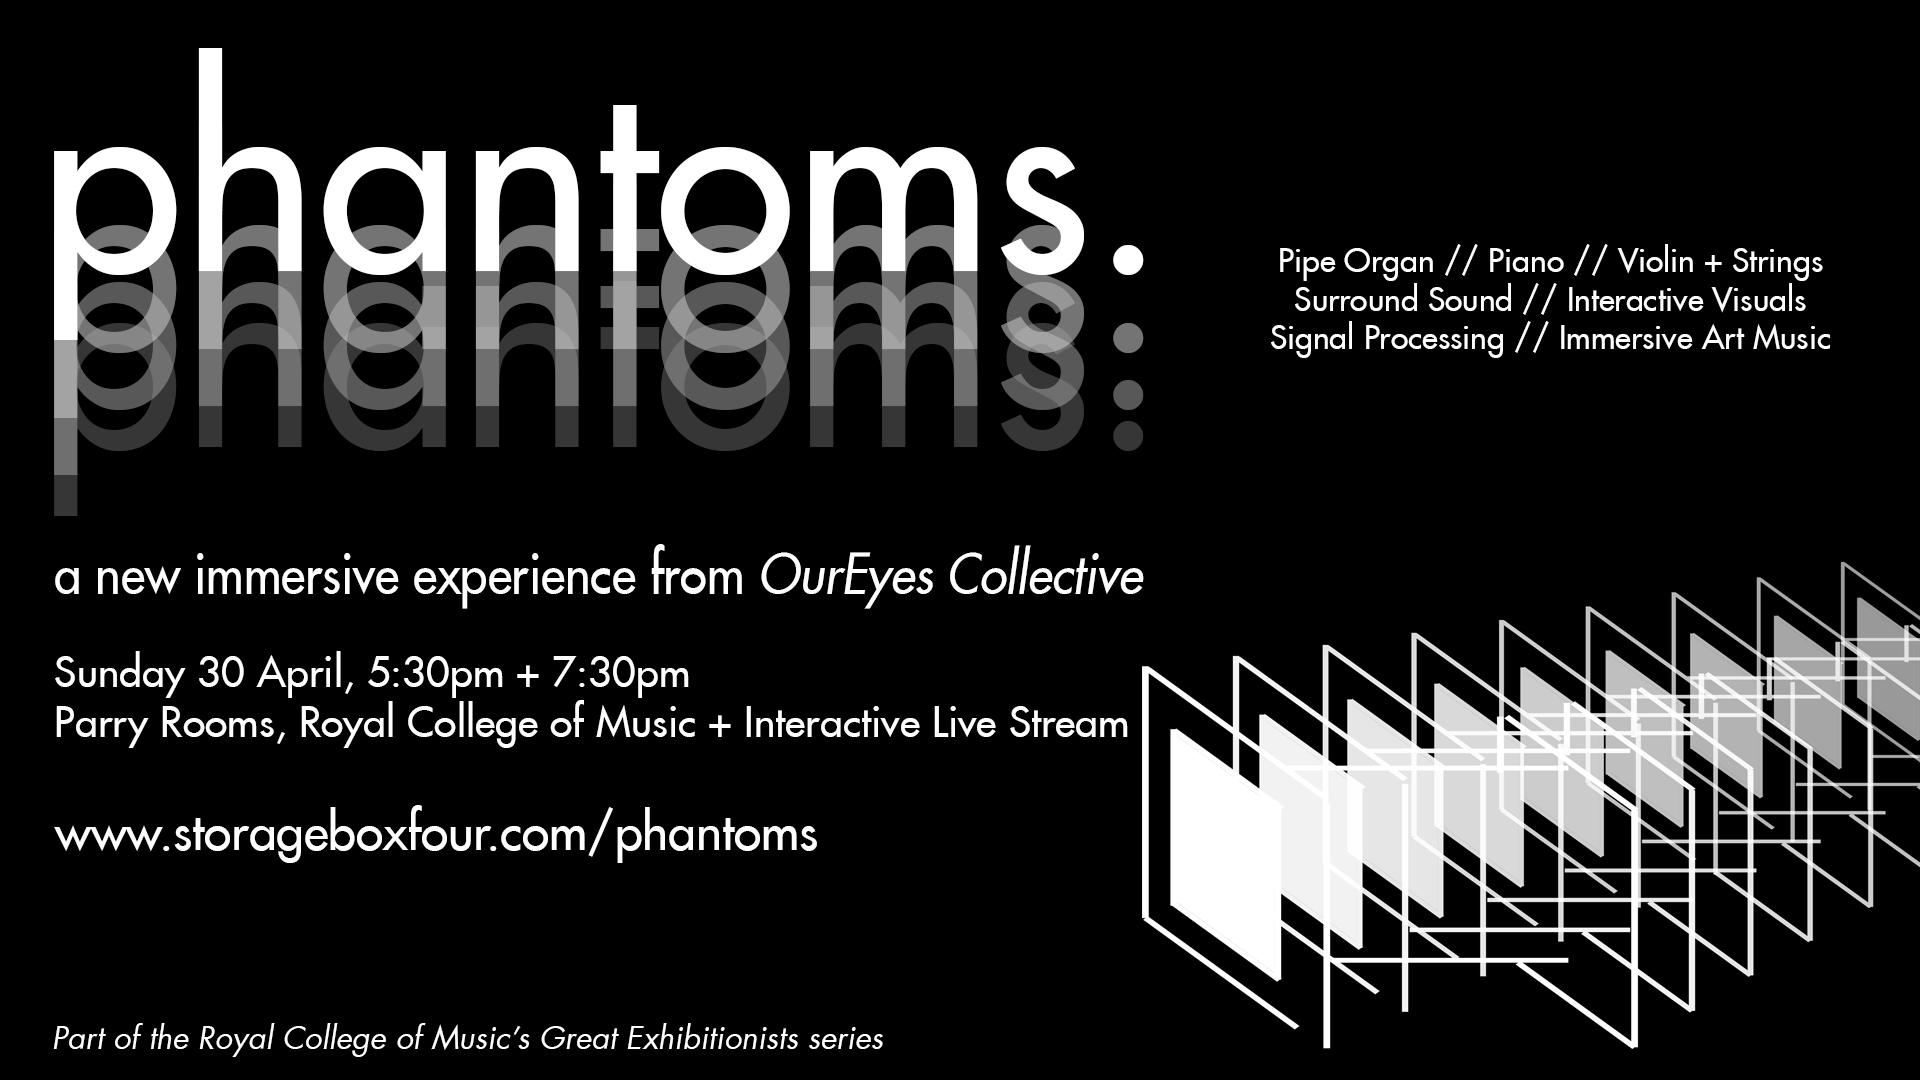 Phantoms - An Immersive Multimedia Experience